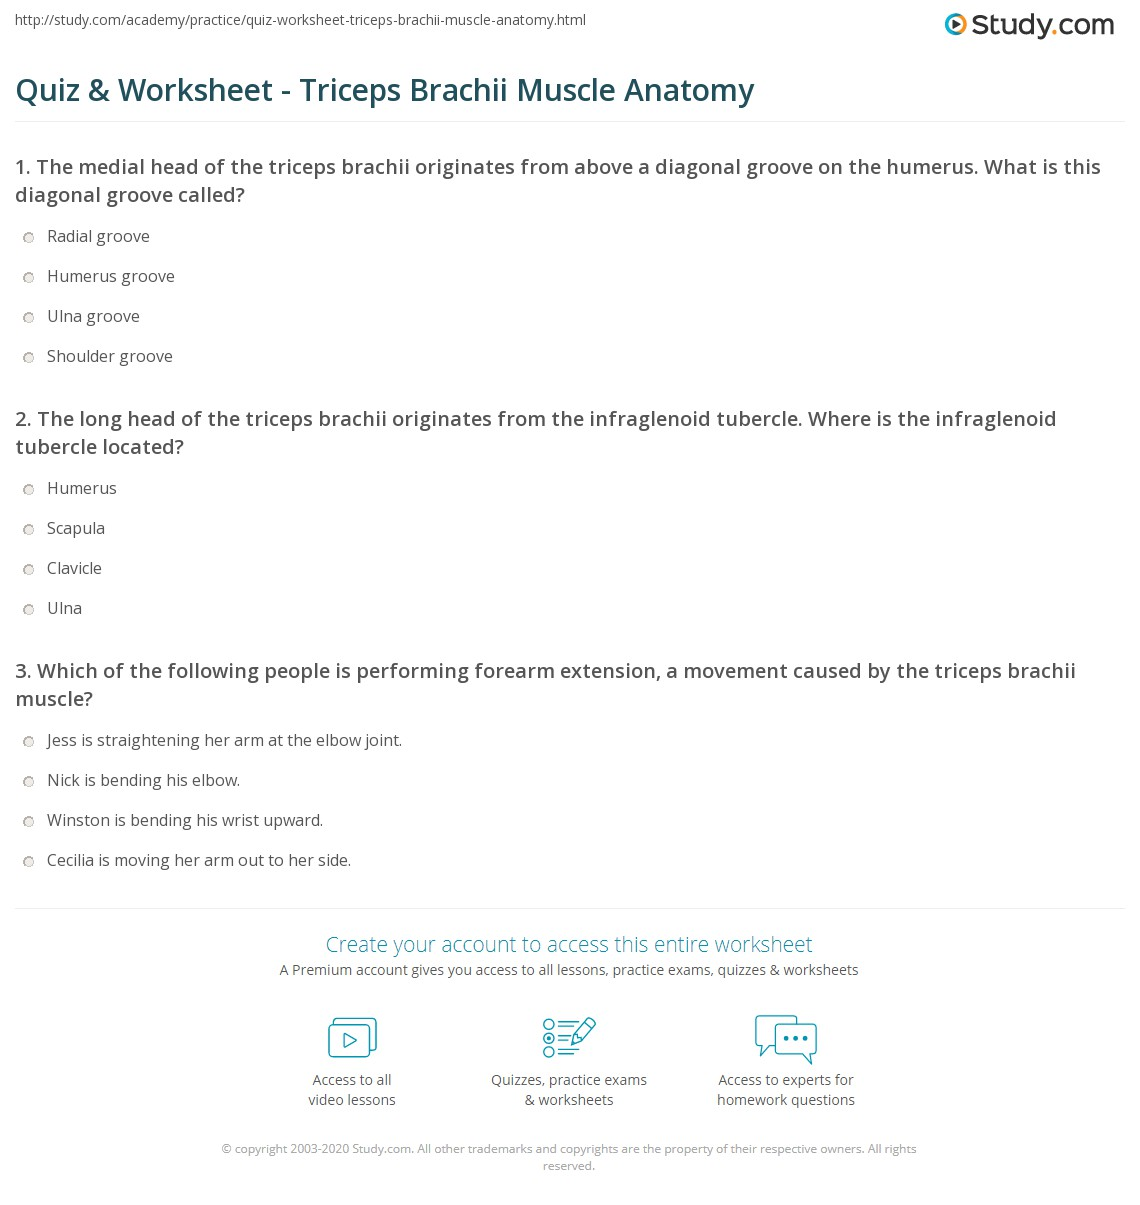 Quiz Worksheet Triceps Brachii Muscle Anatomy Study